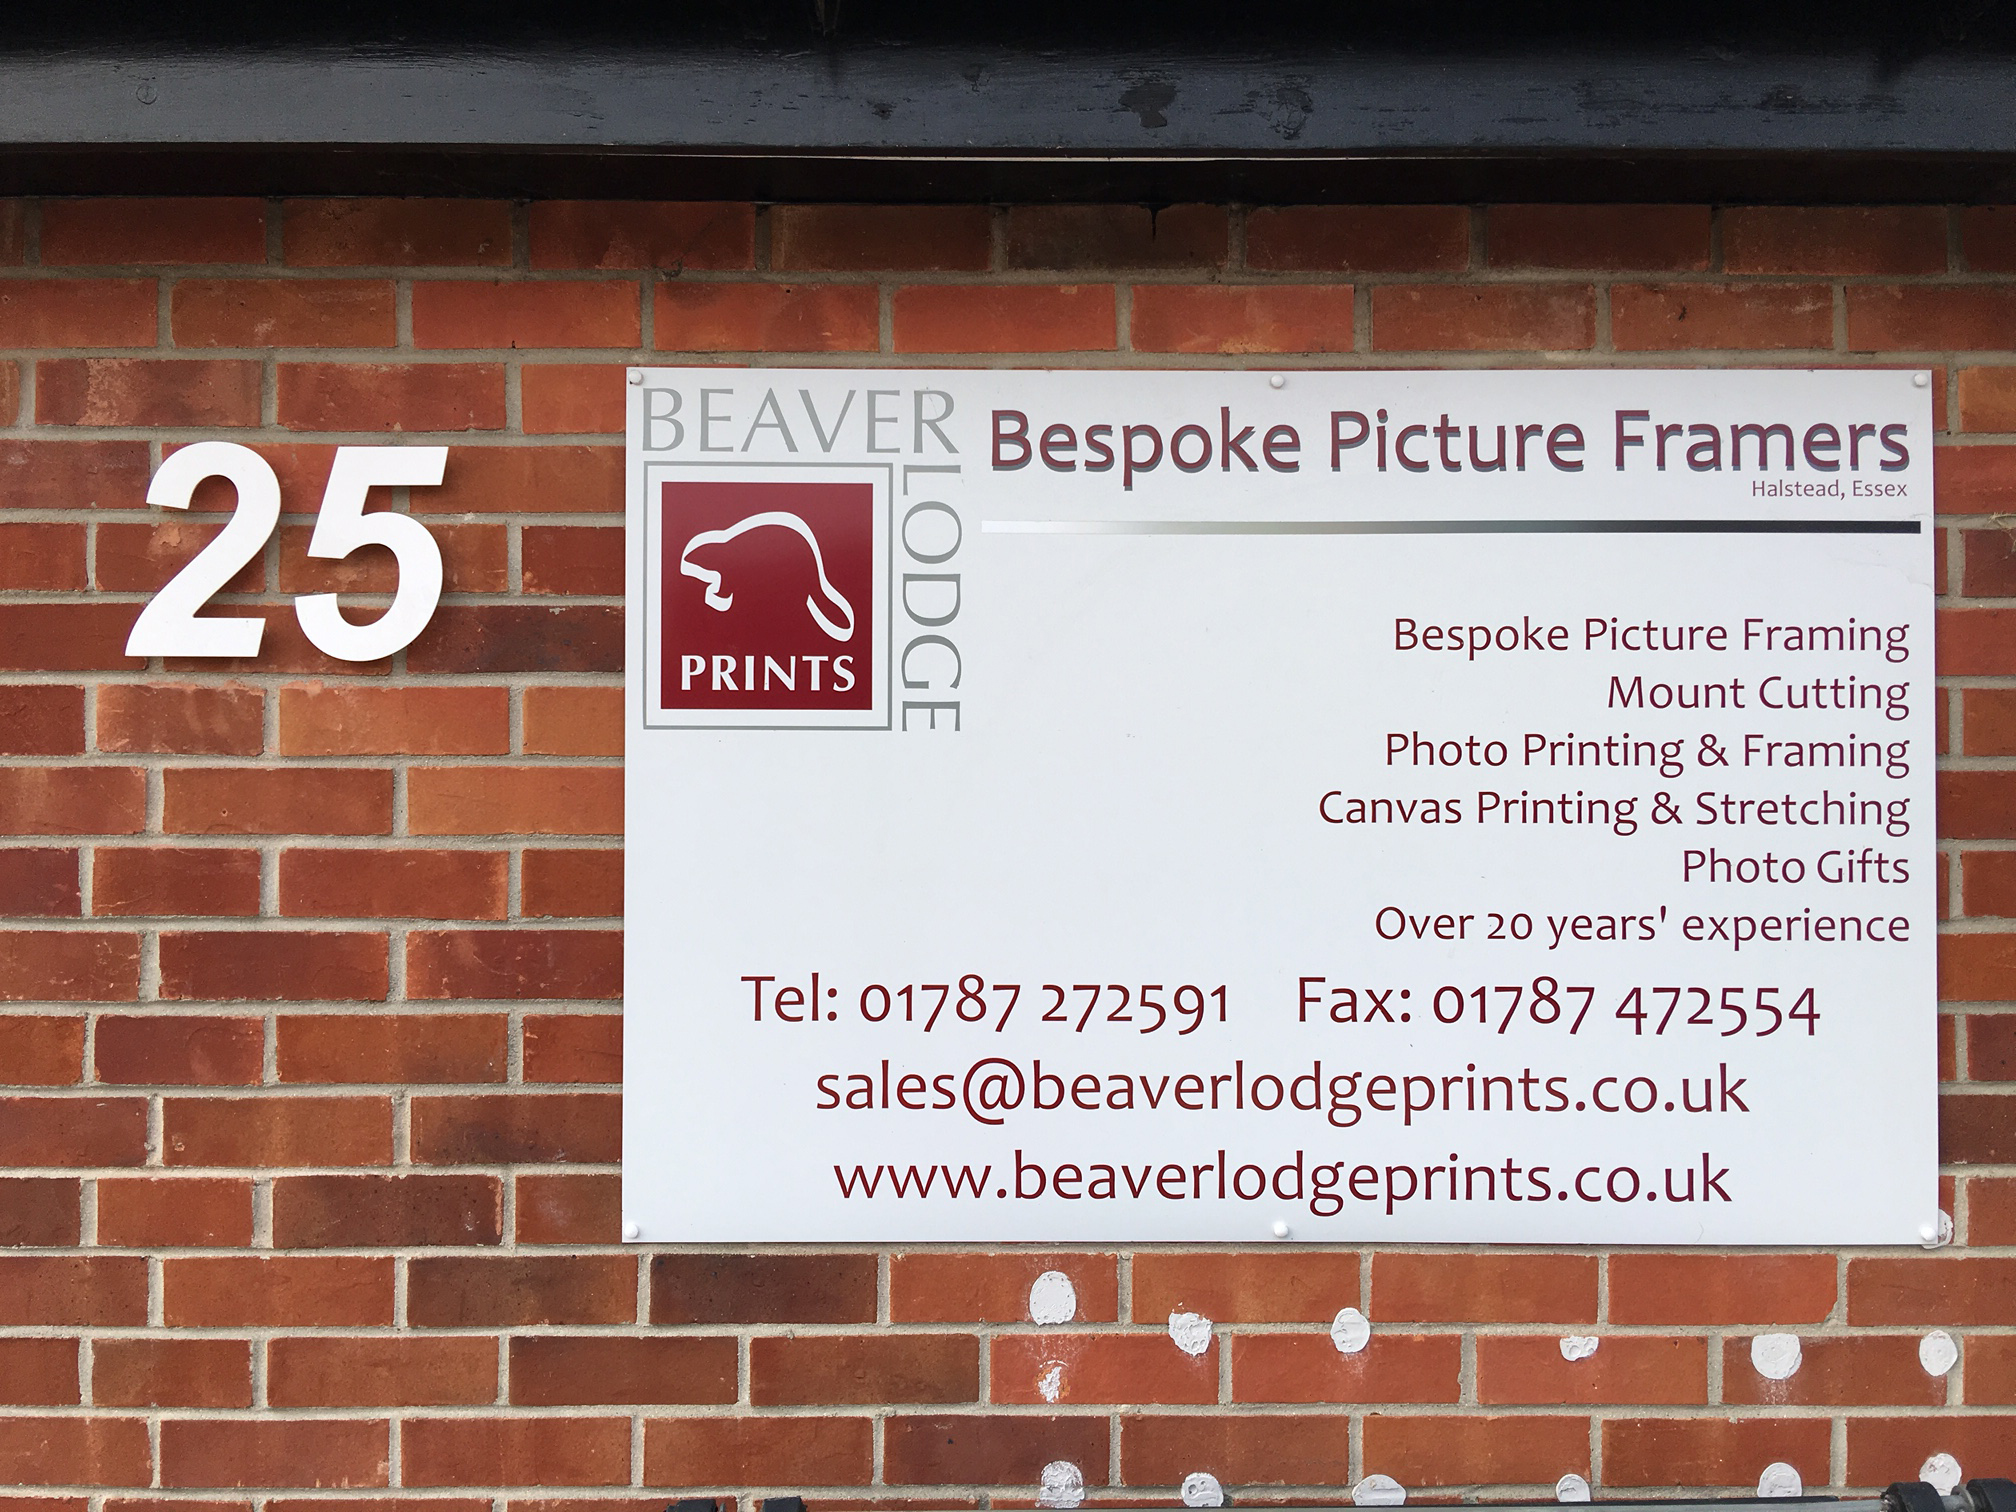 Beaver Lodge Prints Ltd